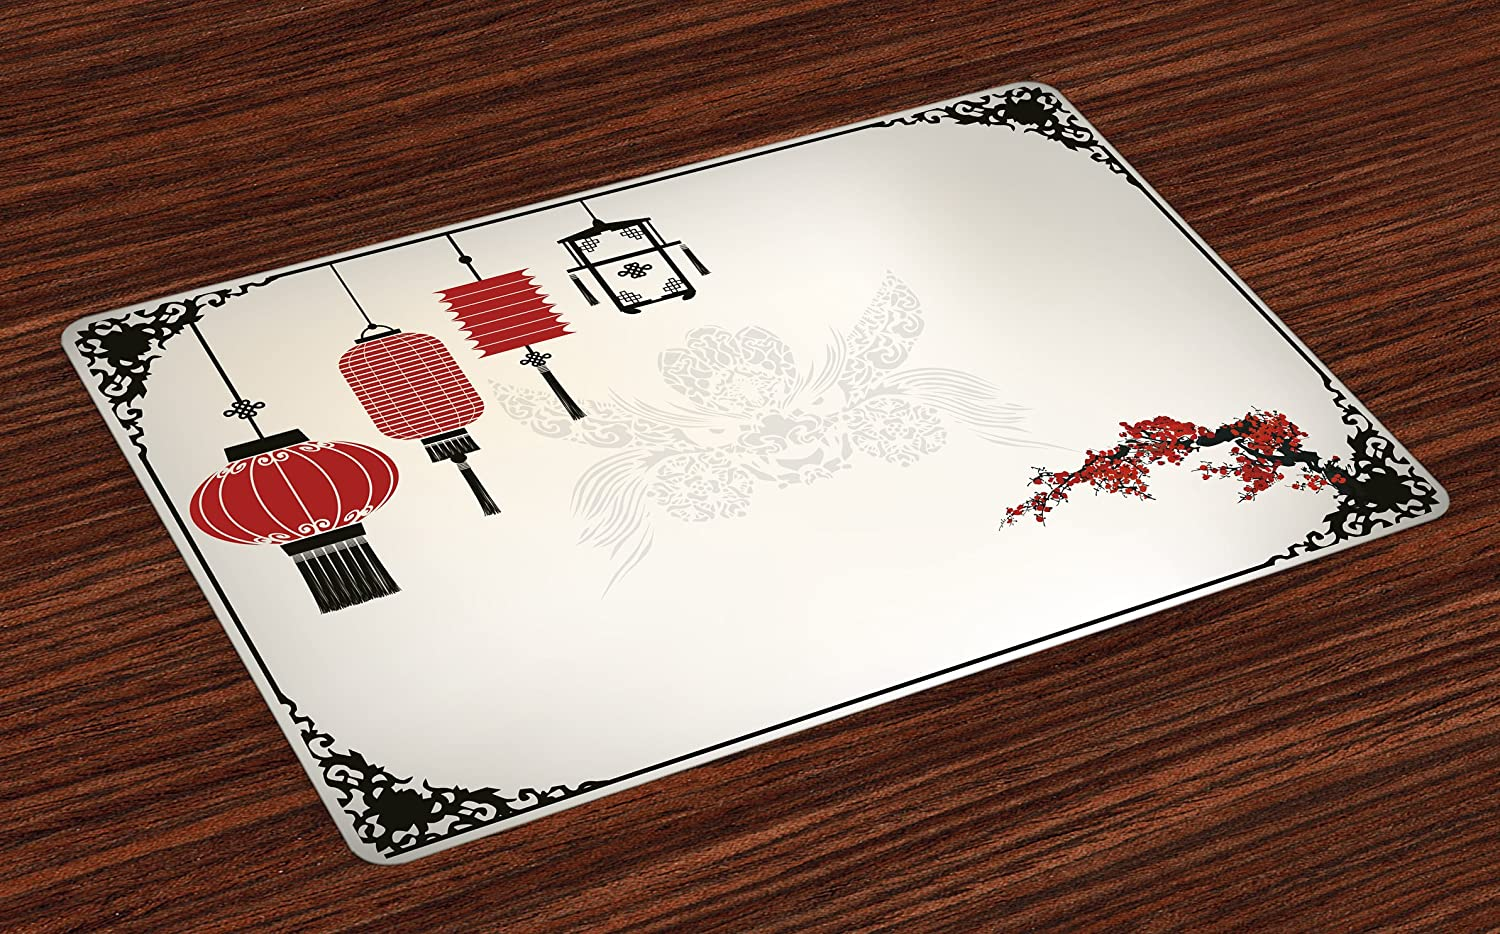 Ambesonne Lantern Place Mats Set of 4, Minimalist Chinese New Year Themed Pattern Eastern Parts of The World Print, Washable Fabric Placemats for Dining Room Kitchen Table Decor, Black White Red